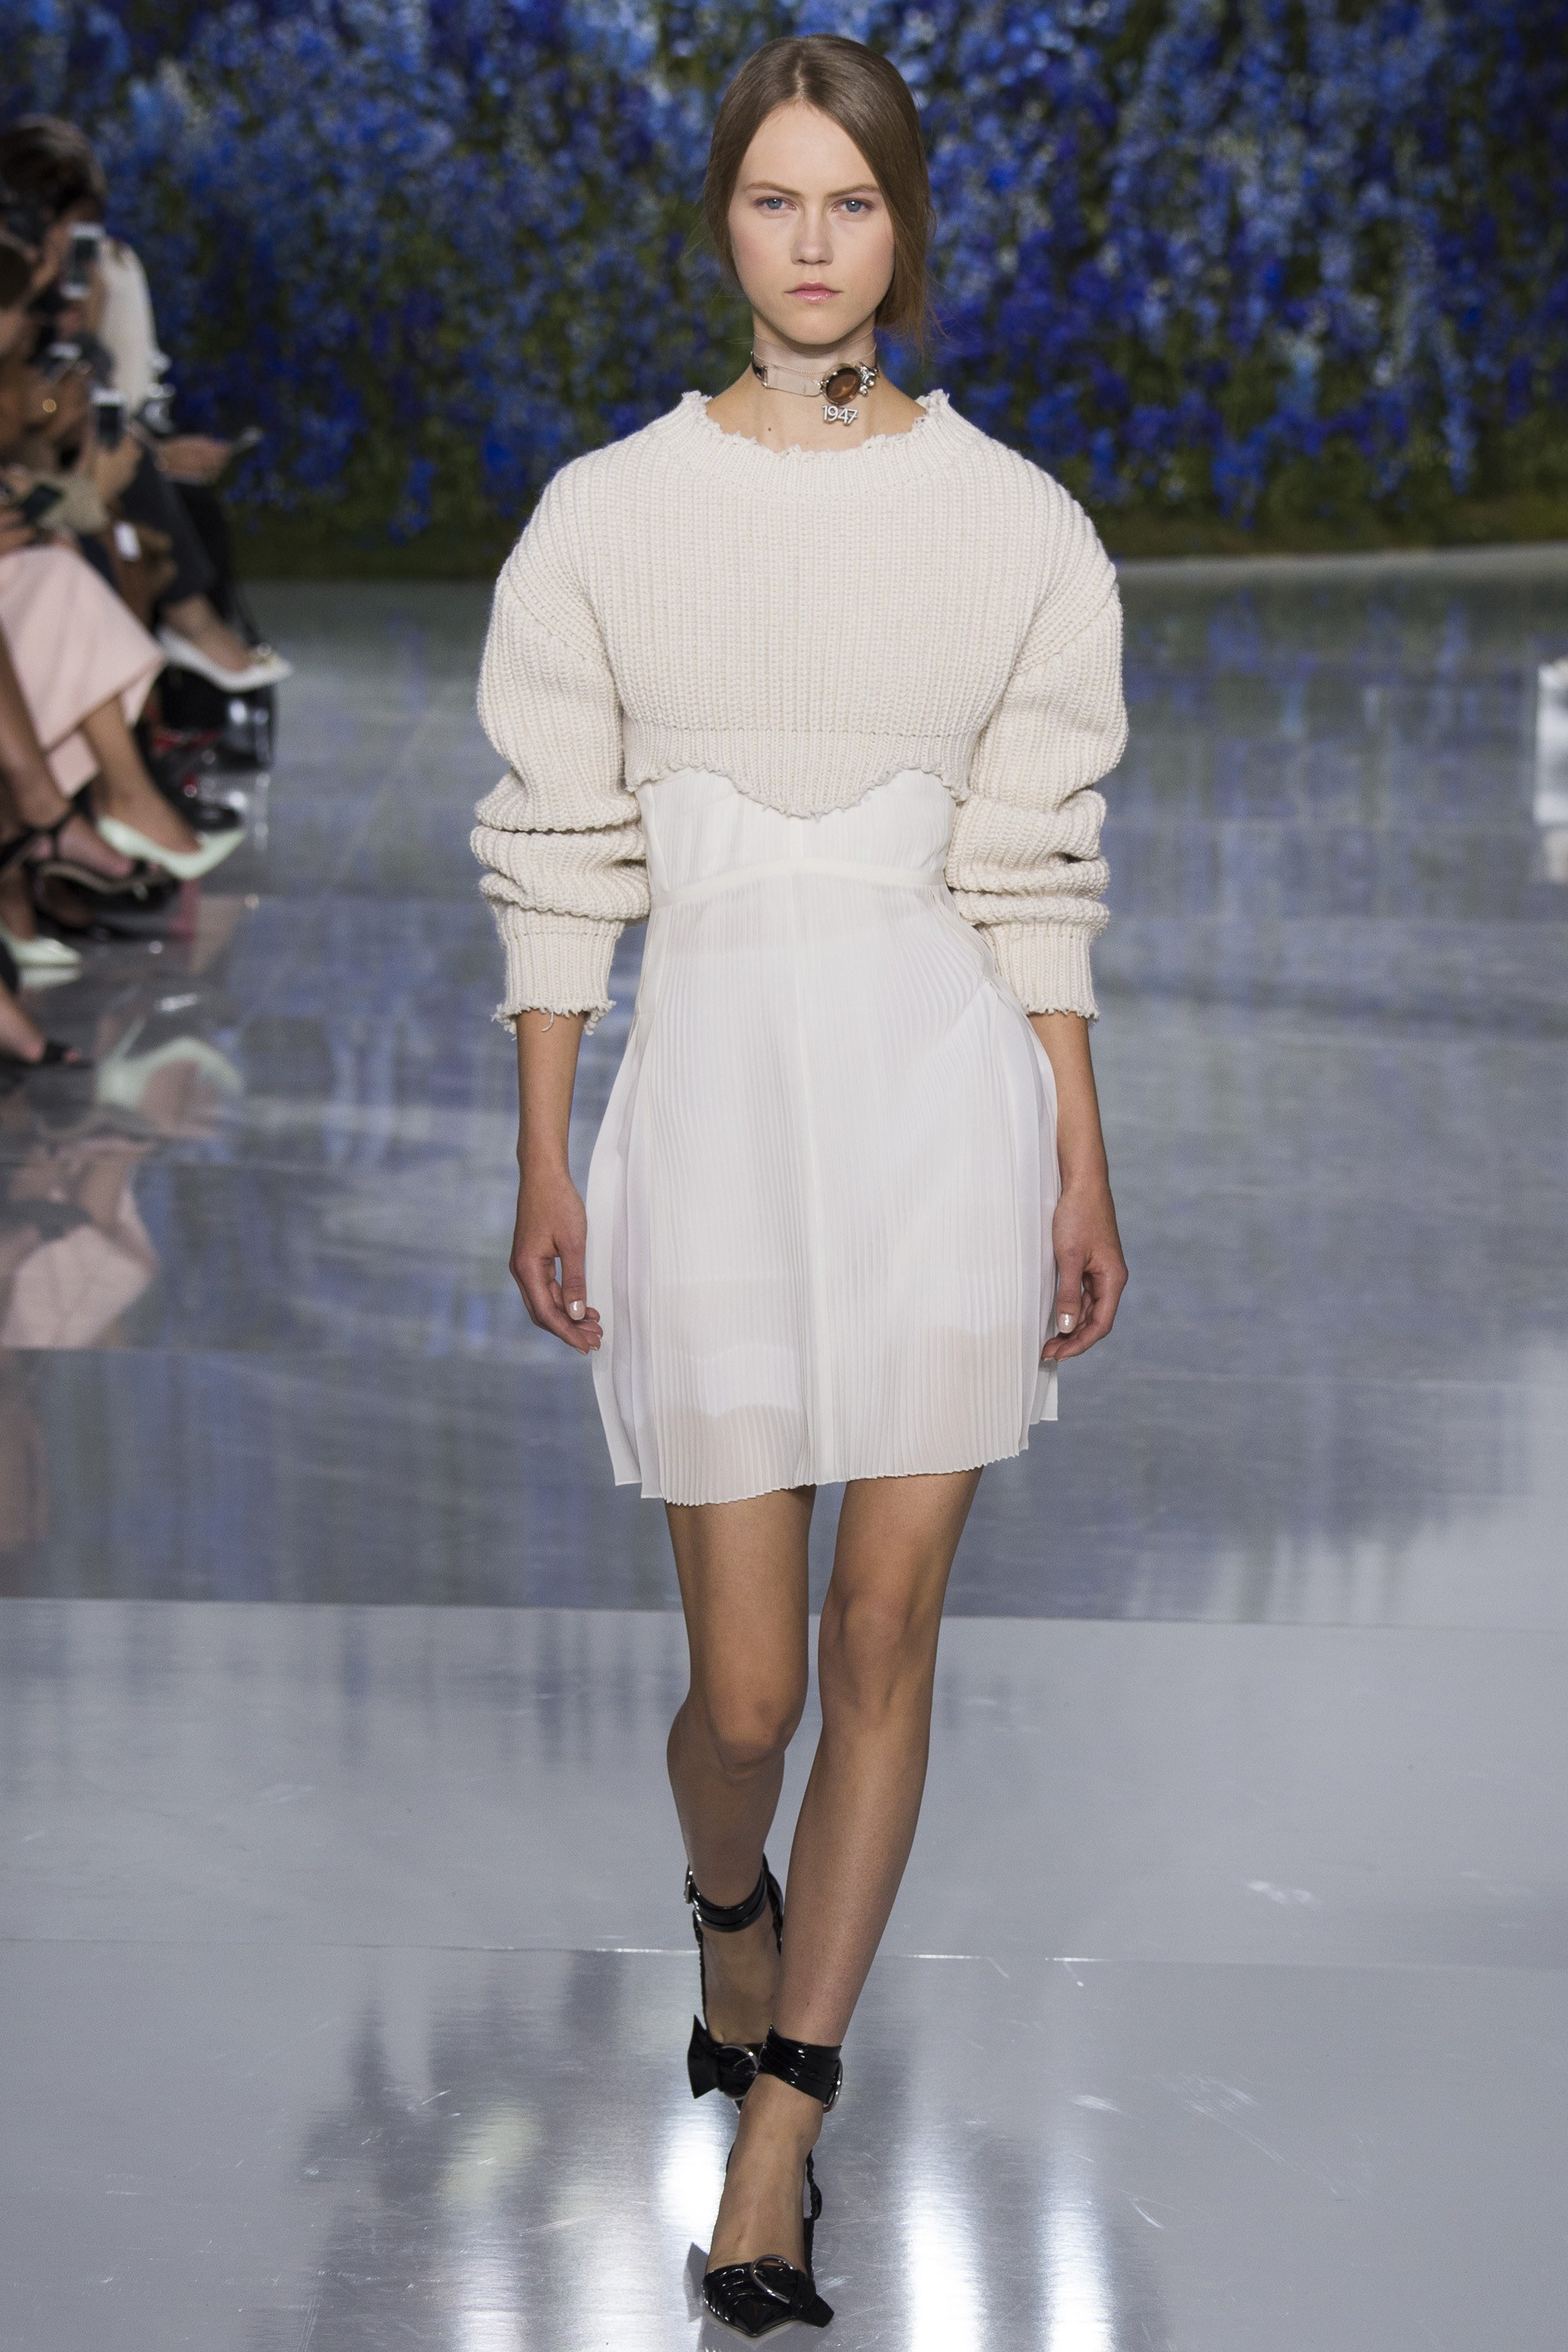 dior big sleeve trend